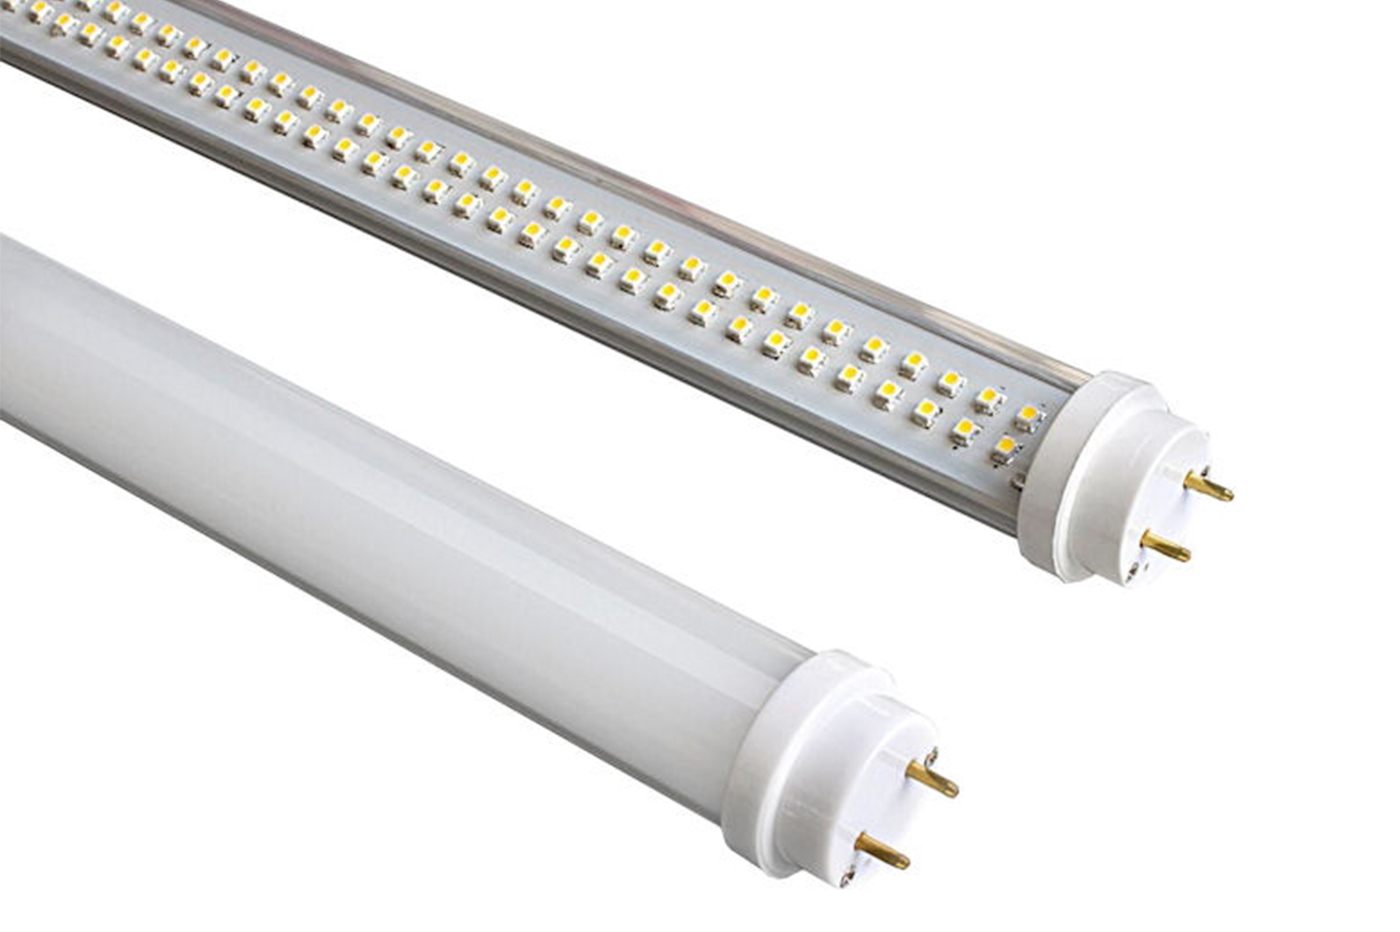 Plafoniera Con Tubo A Led : Bes 16144 tubi led beselettronica neon alta potenza 9 14